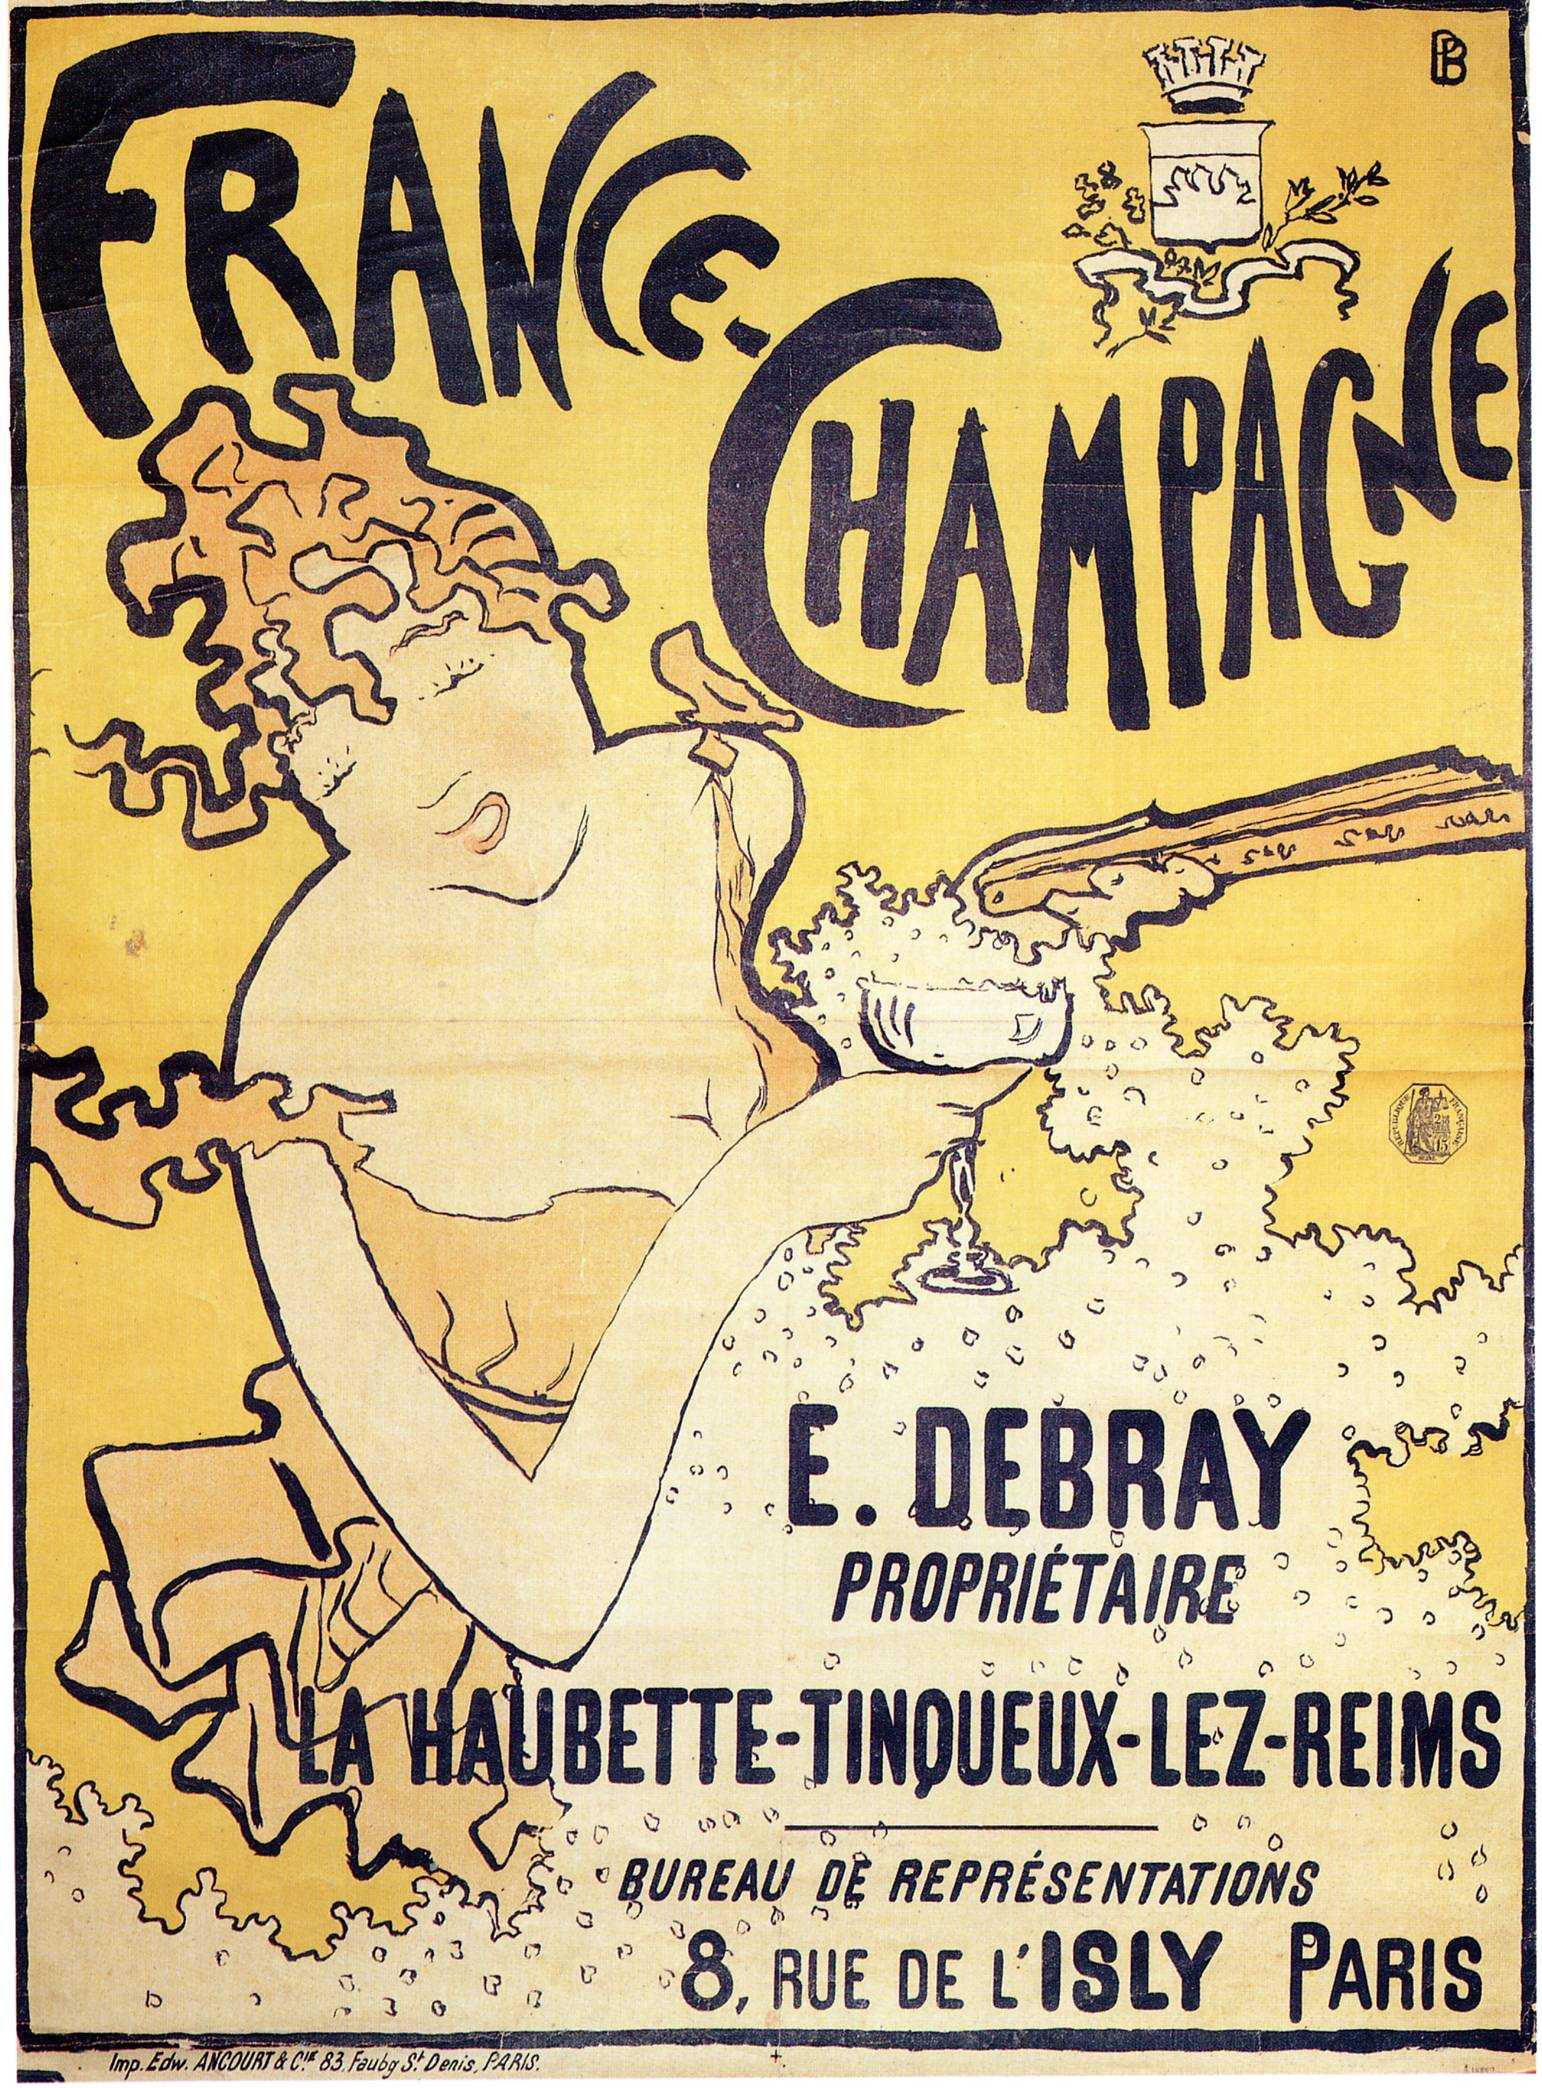 poster-advertising-france-champagne-1891 - Discorsivo